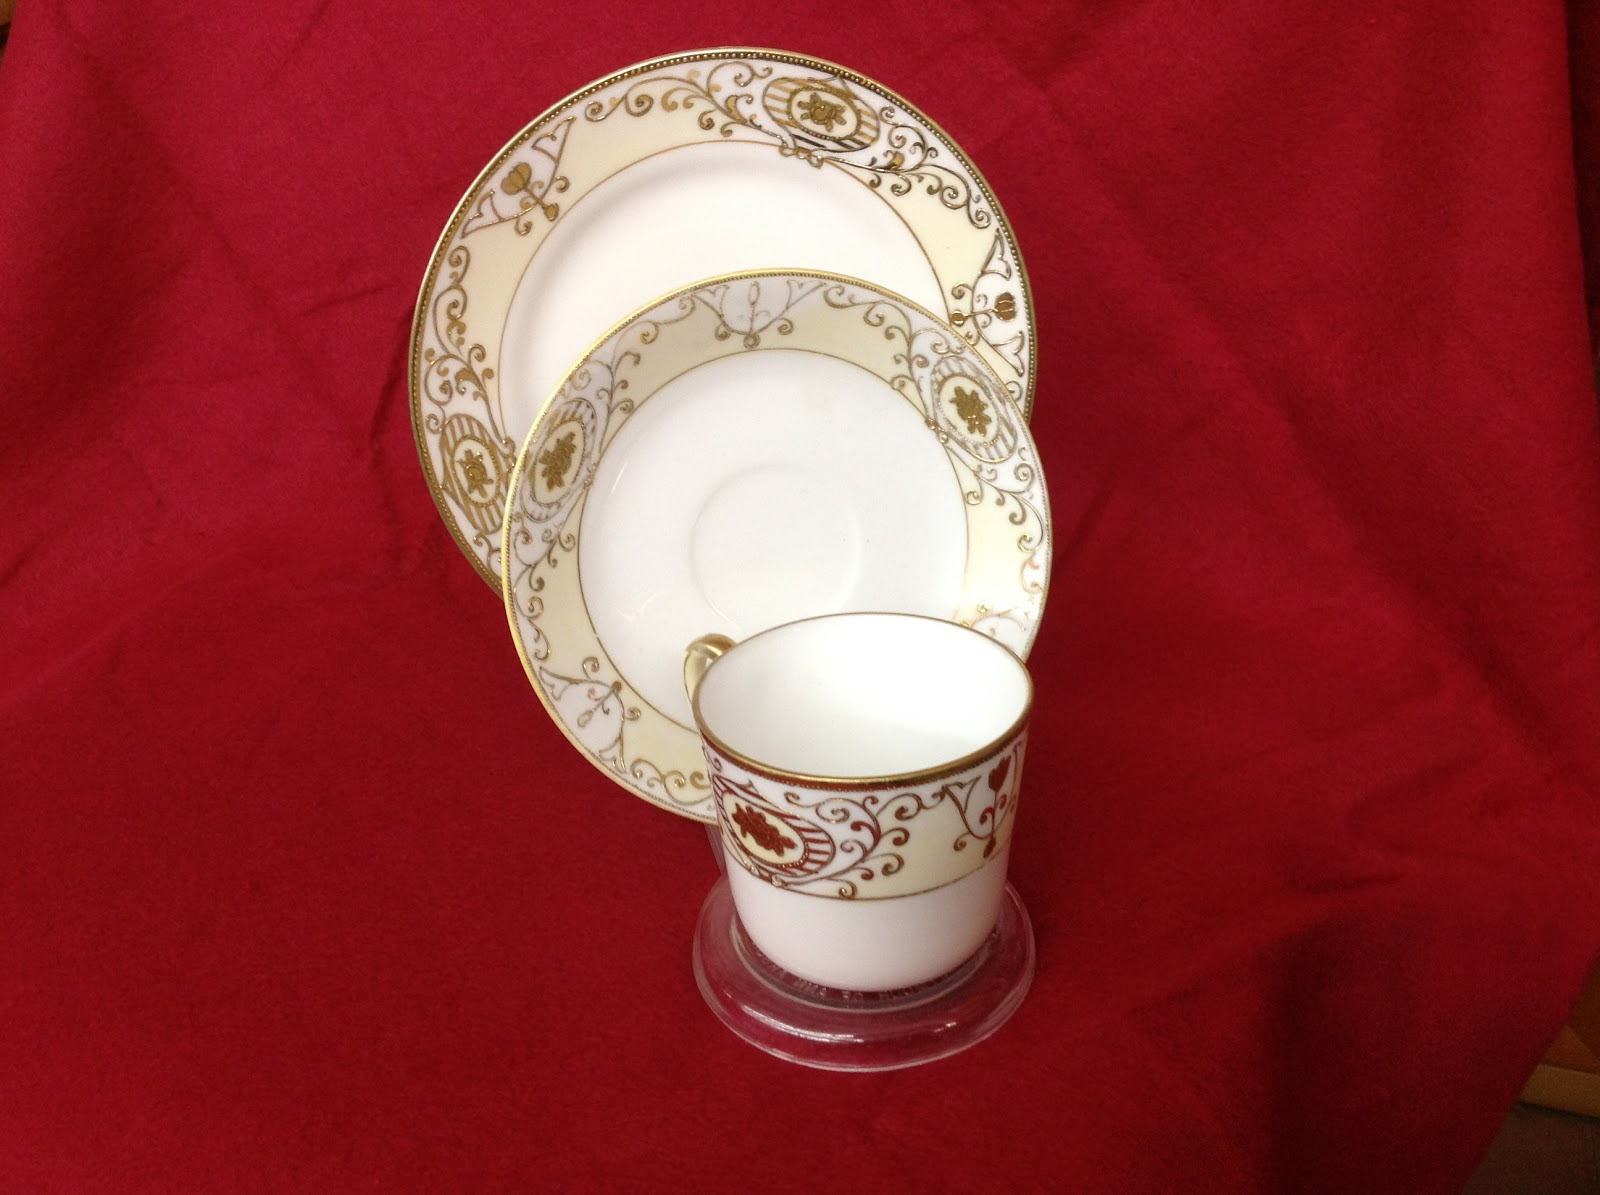 gold and cream embossed Noritake cup, saucer and plate set